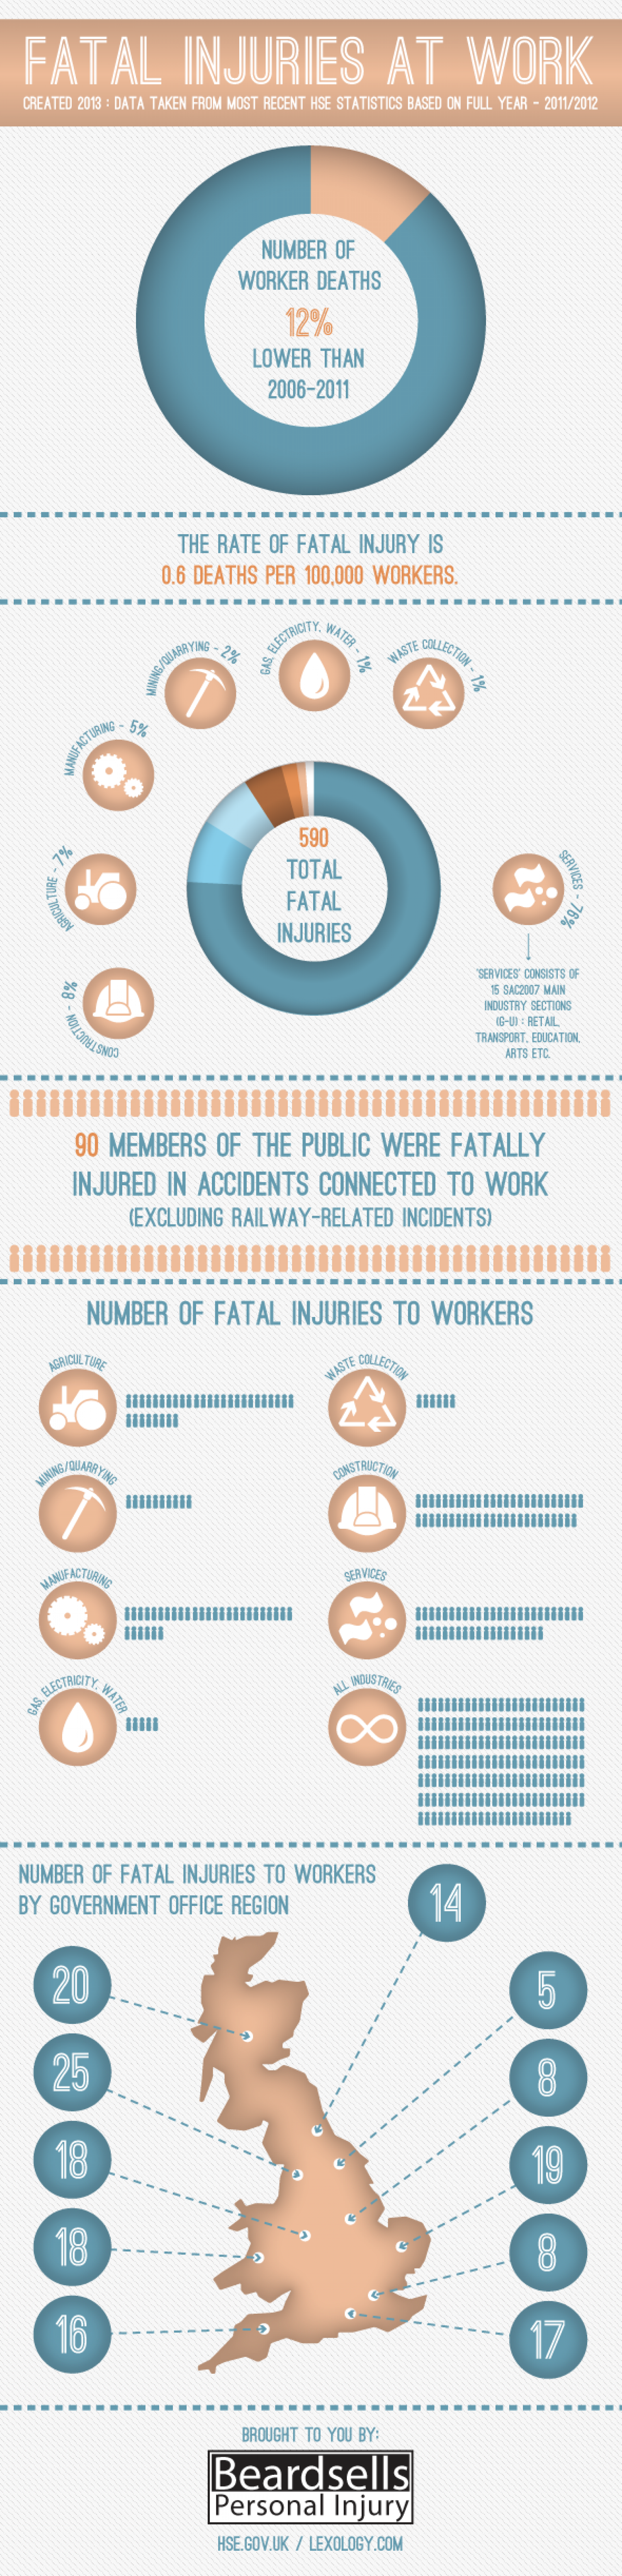 Fatal Injuries At Work Infographic